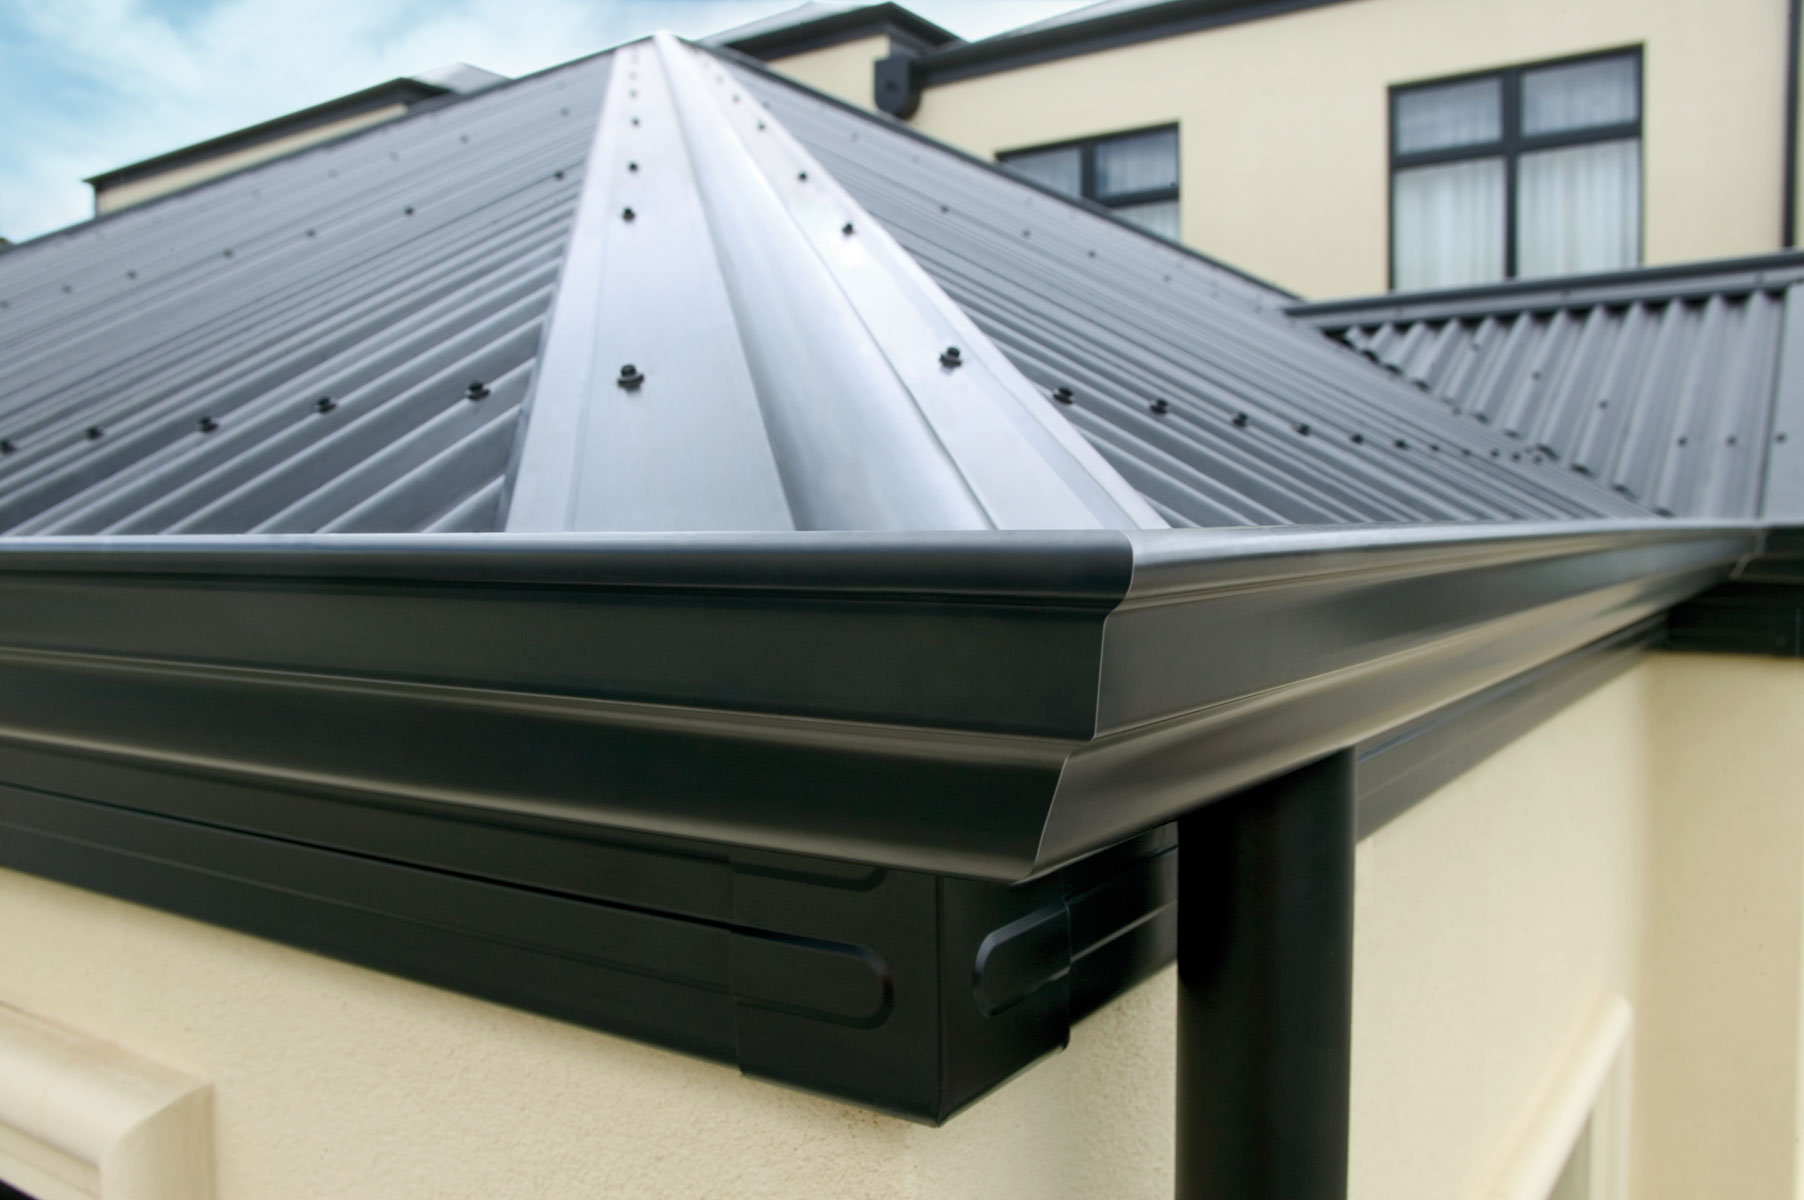 Cgi Corrugated Roofing Walling Stratco Nz